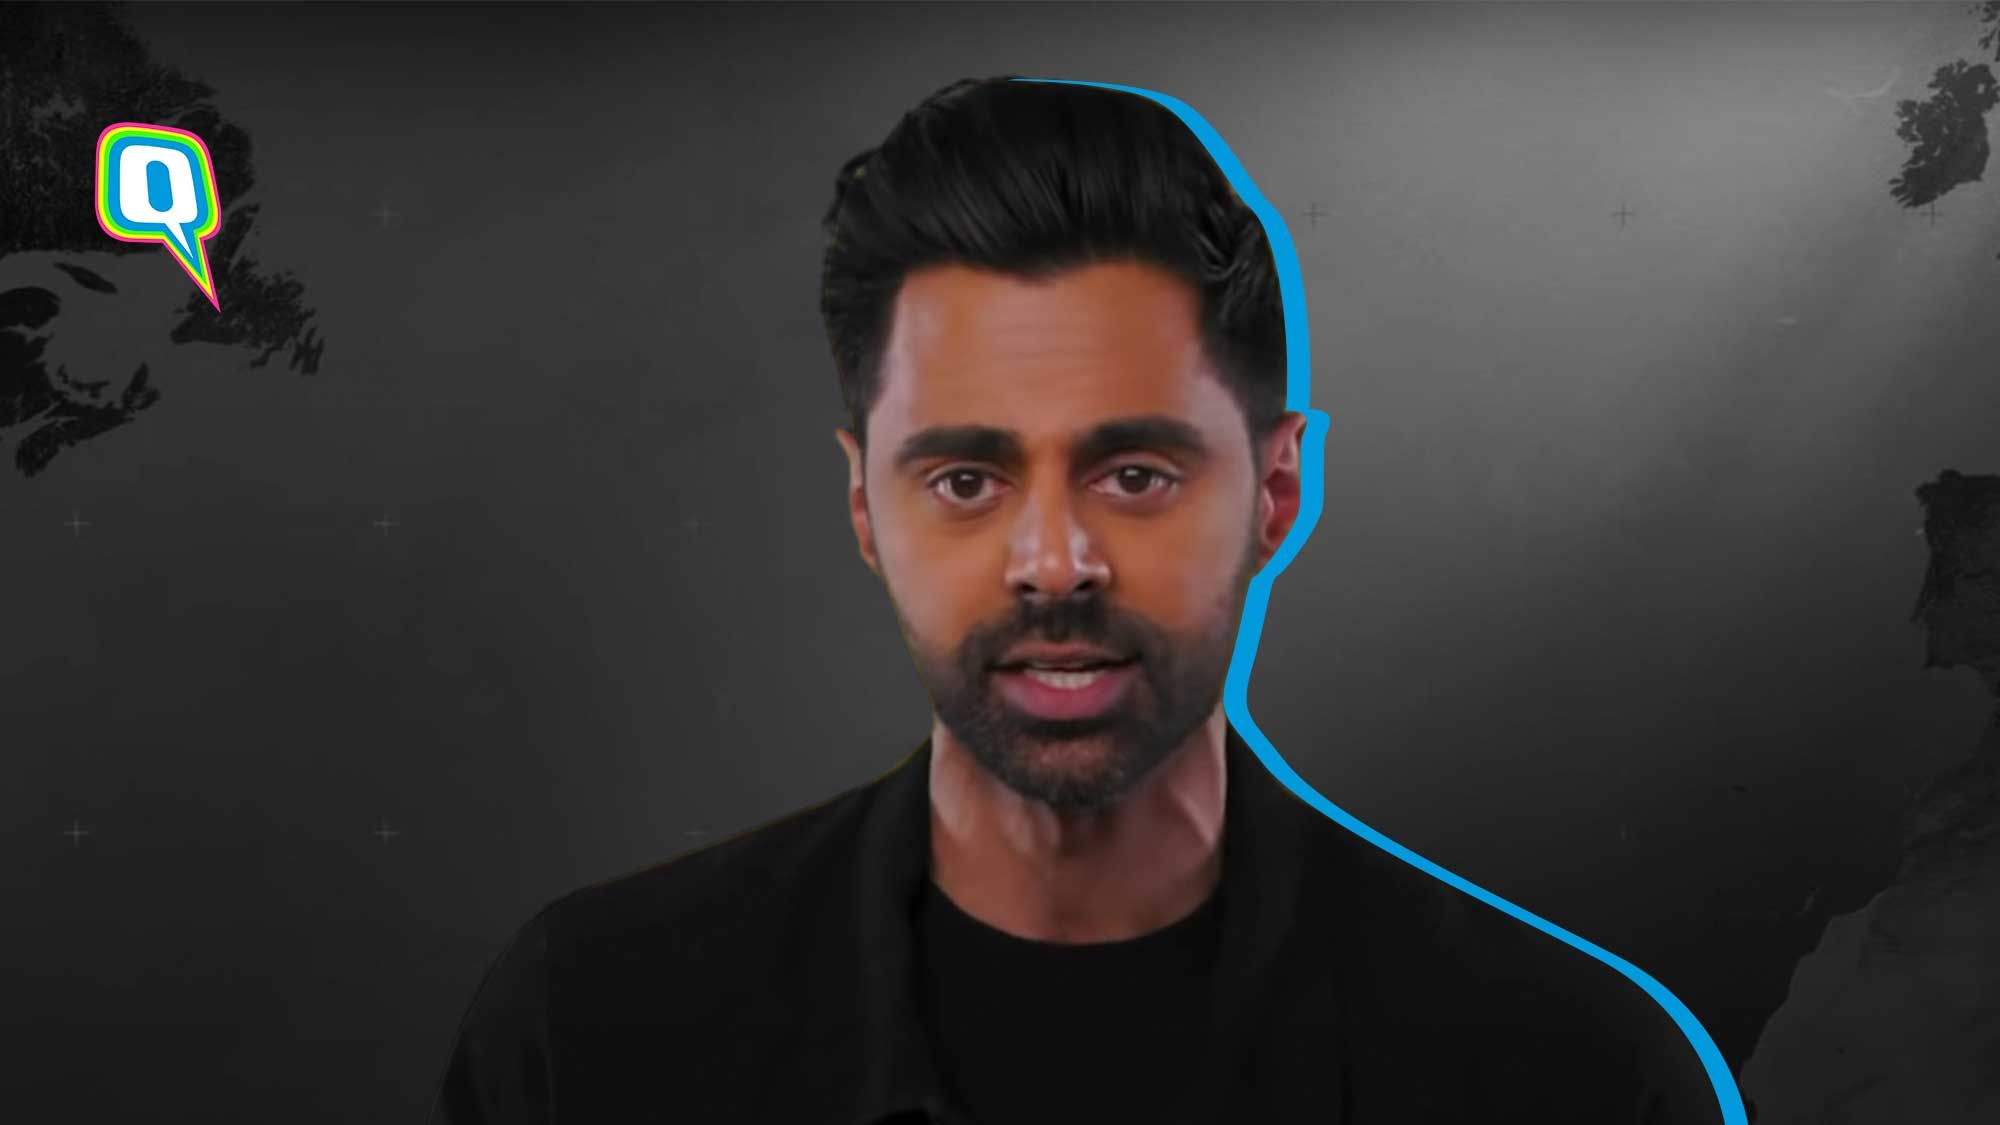 Twitter Cheers Hasan Minhaj For Calling Out Desi Racism